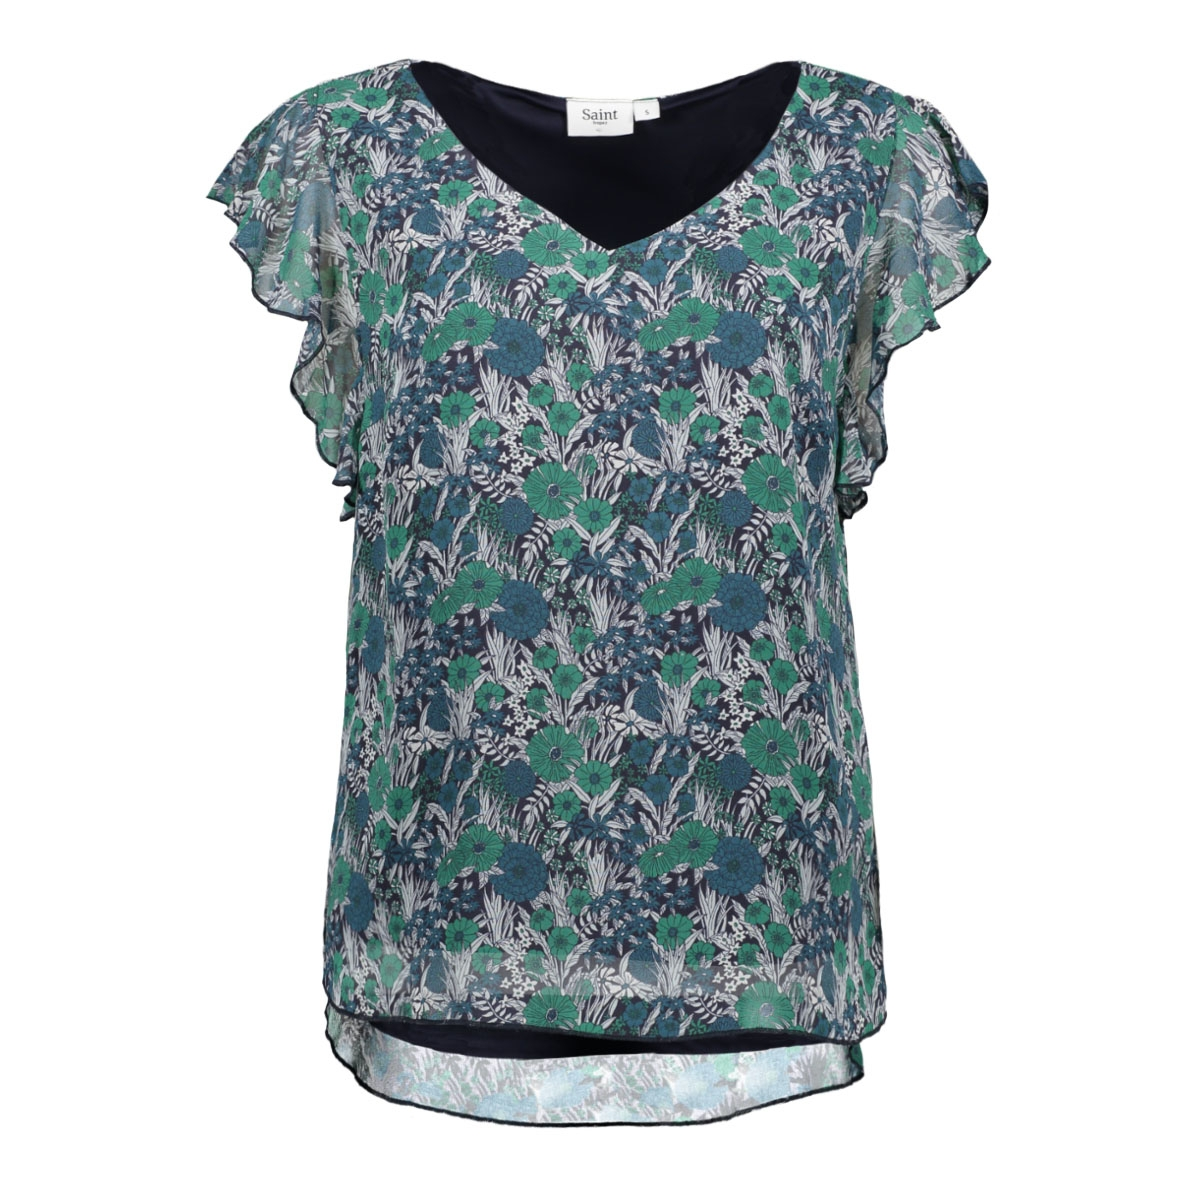 woven top s s u1008 saint tropez top 8310 greenlake